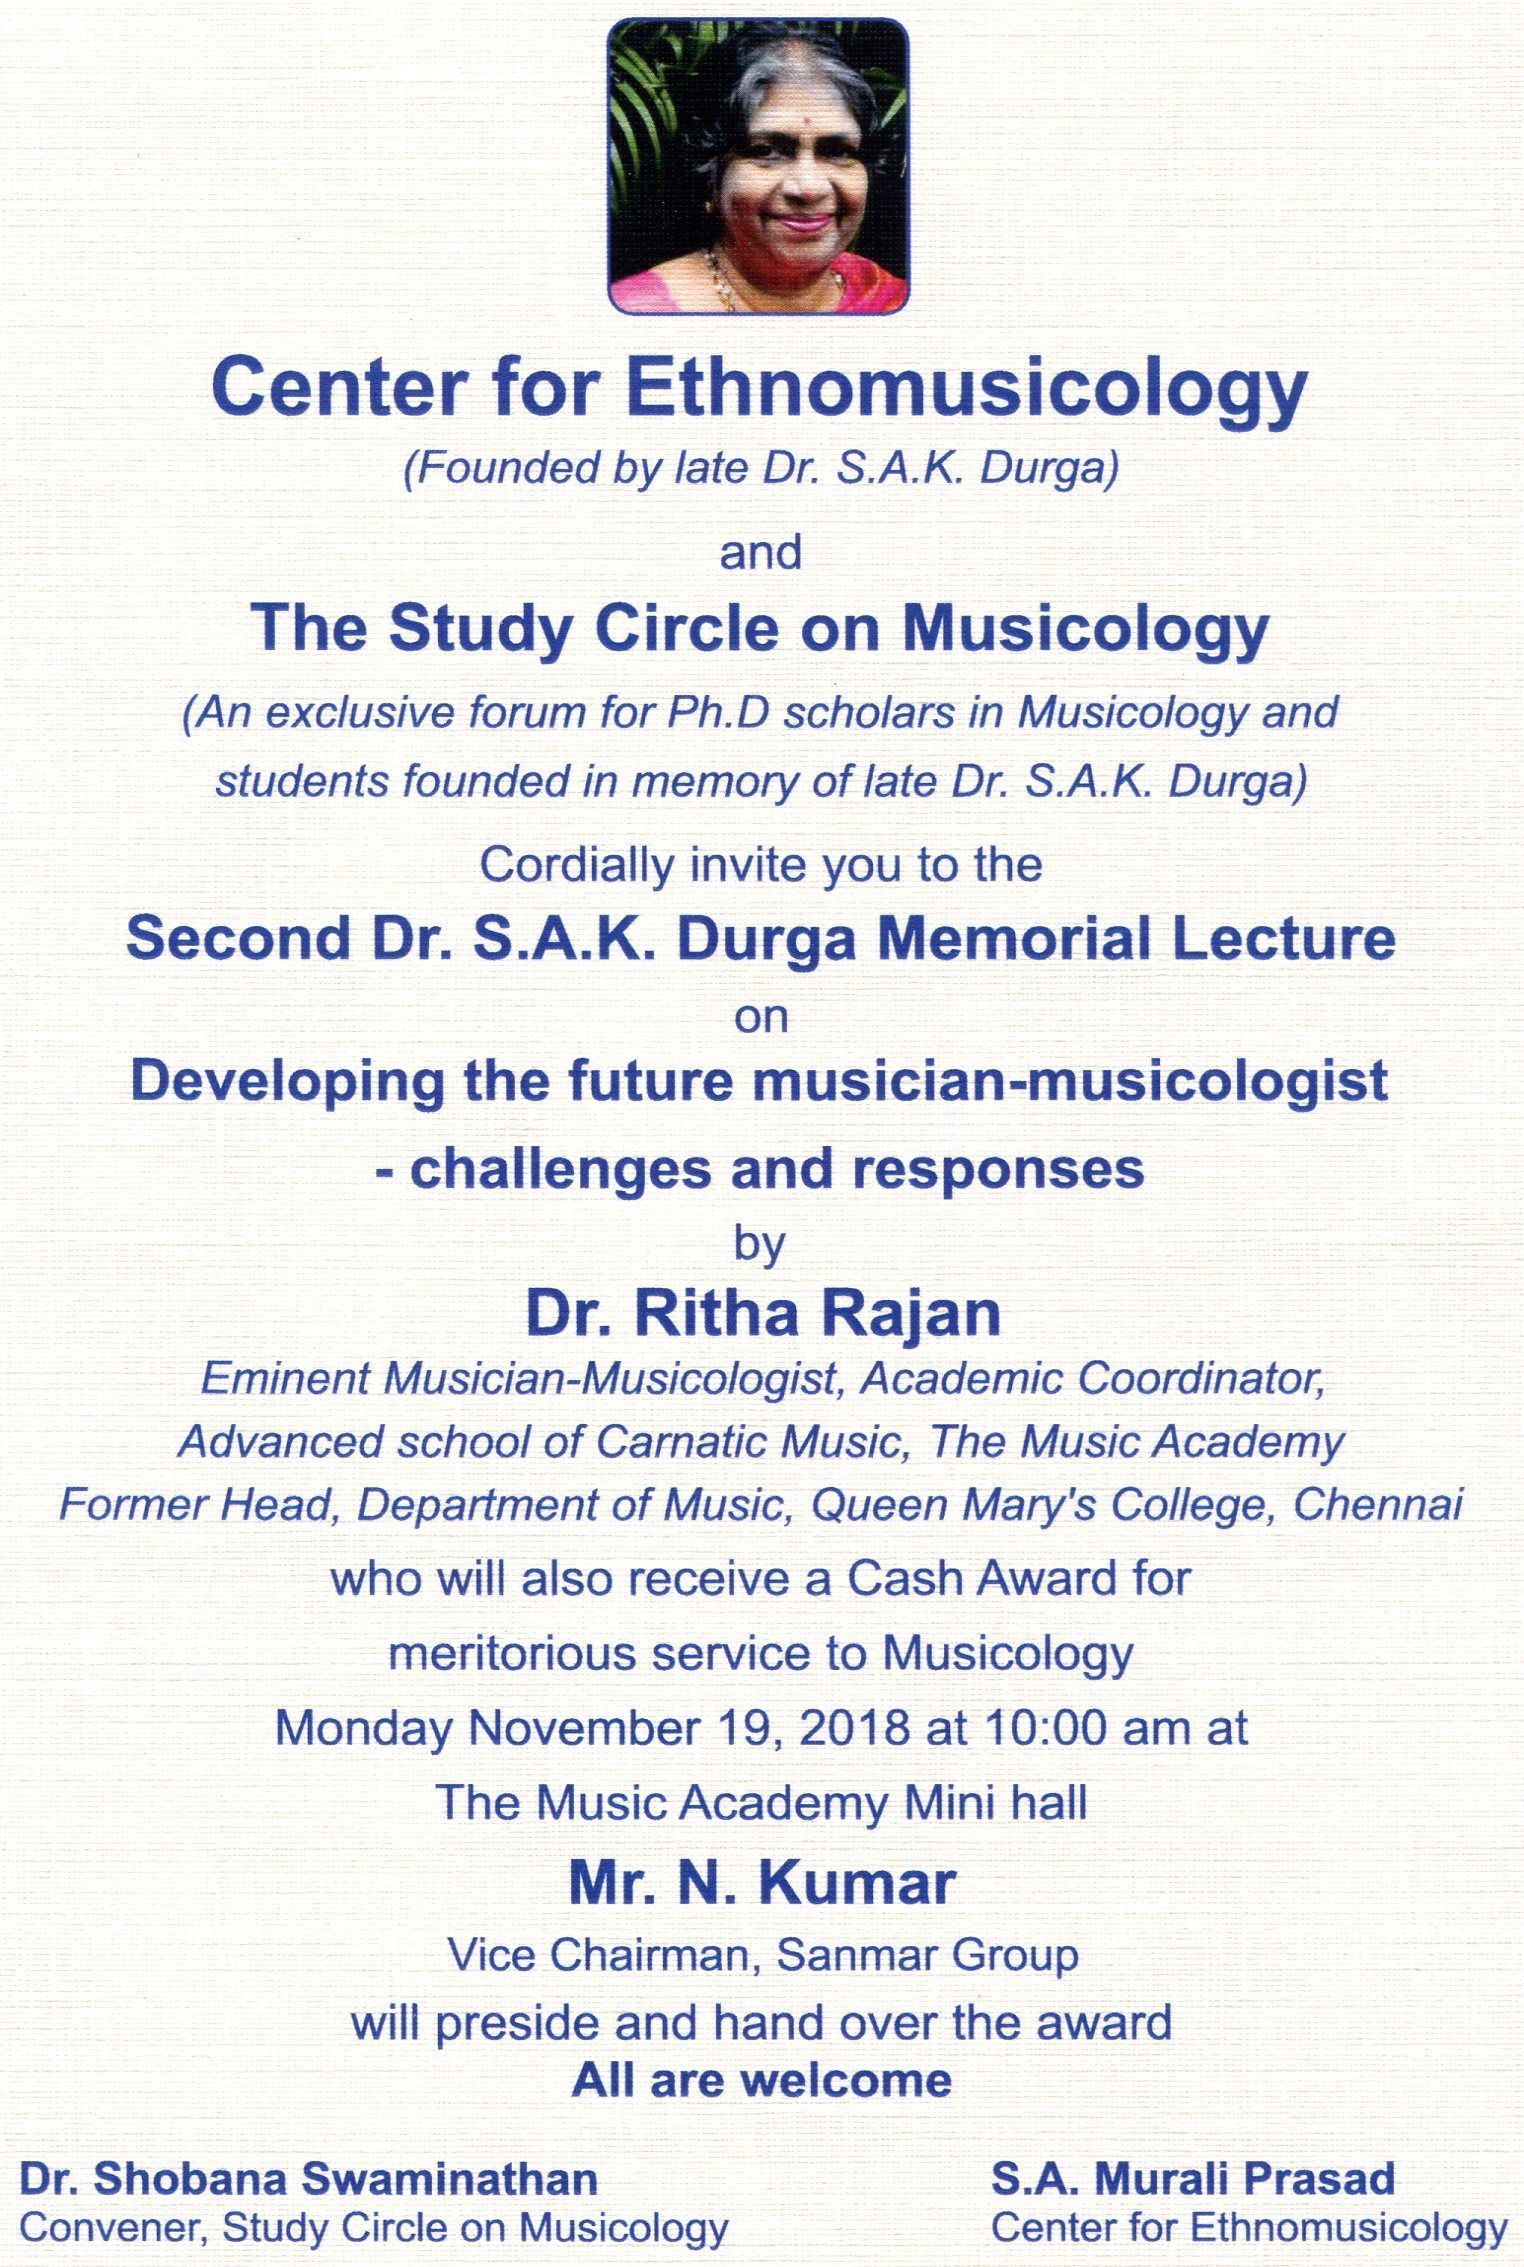 Center for Ethnomusicology